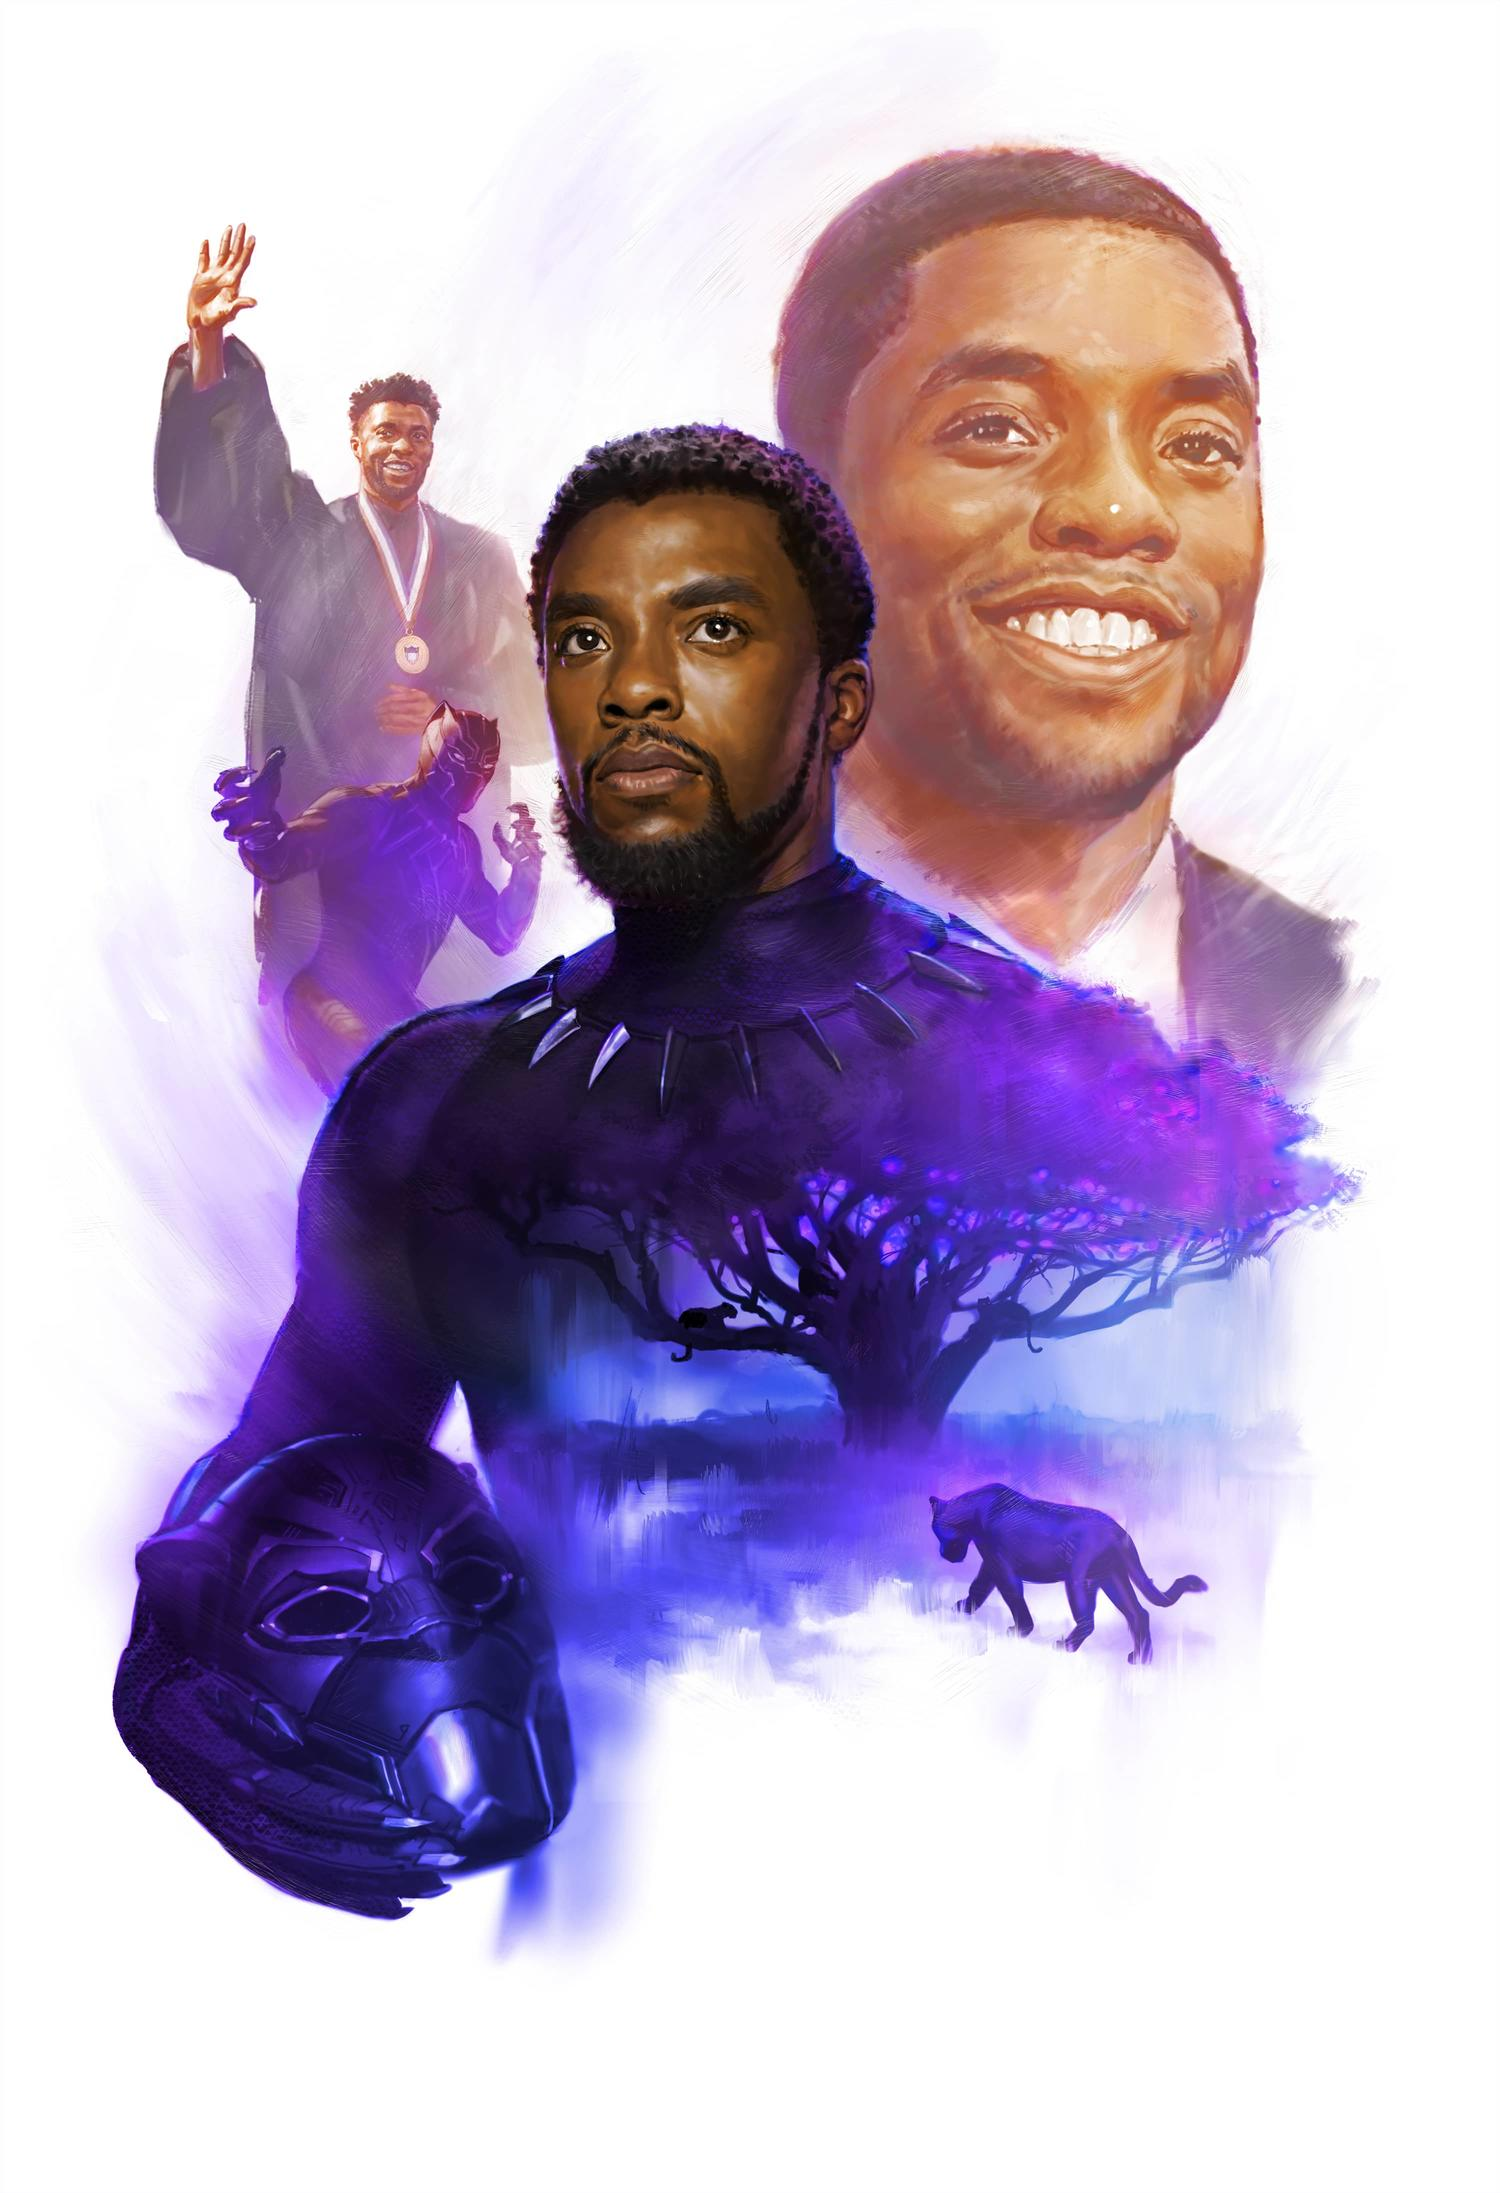 Marvel Studios Pays Tribute to Chadwick Boseman with Piece From Ryan Meinerding | Marvel